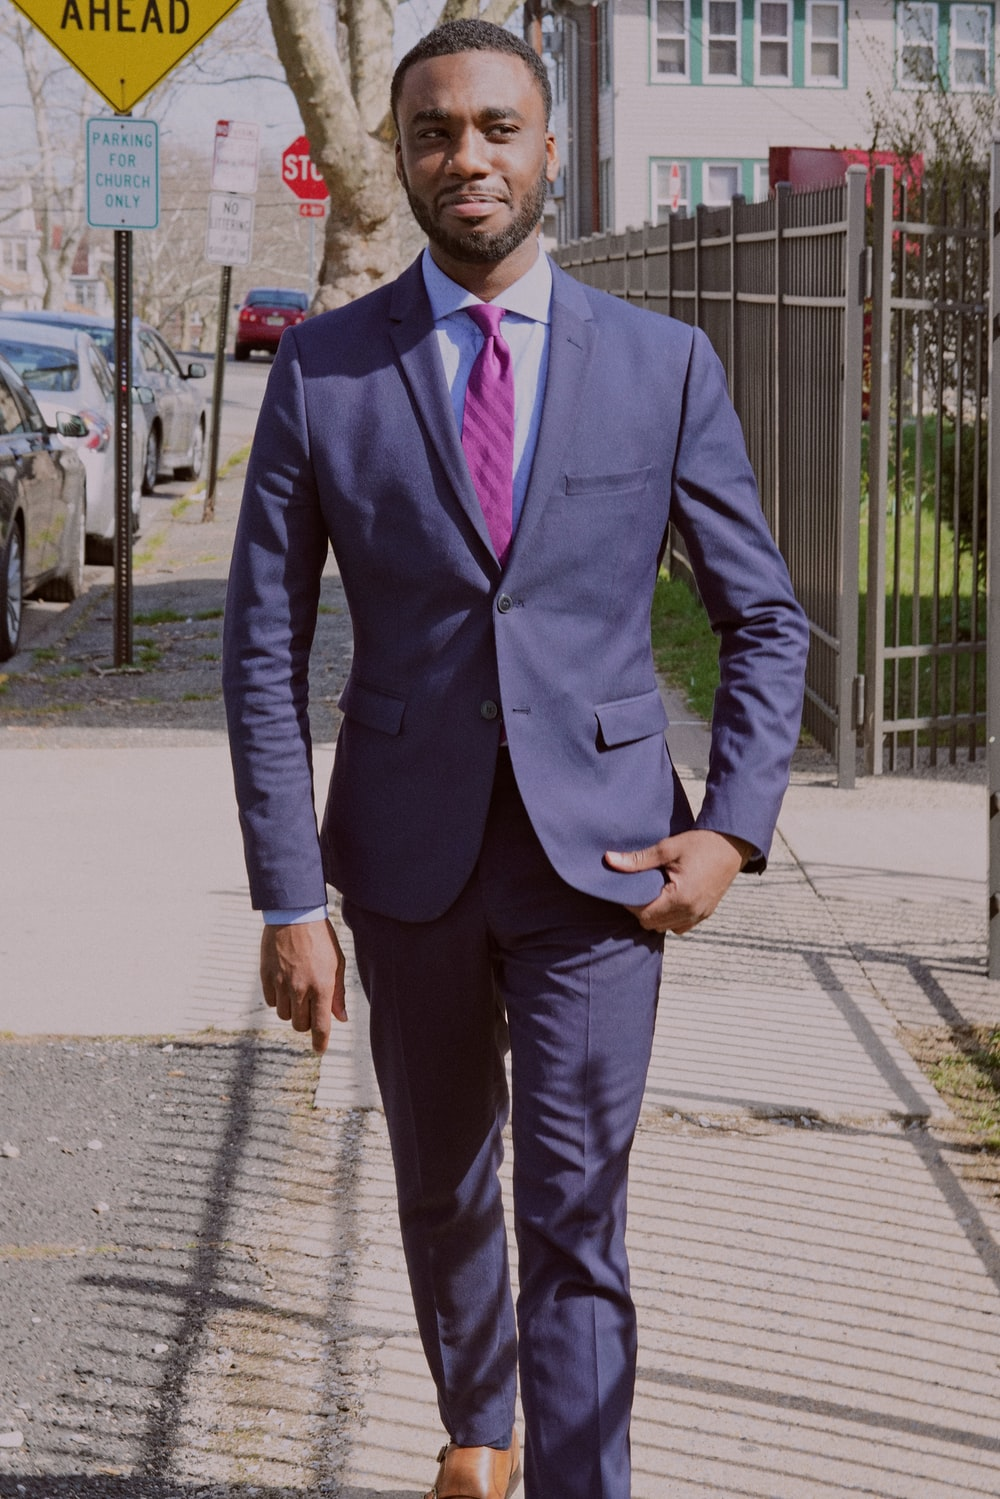 man in blue suit walking on the sidewalk near metal fence and parked vehicle